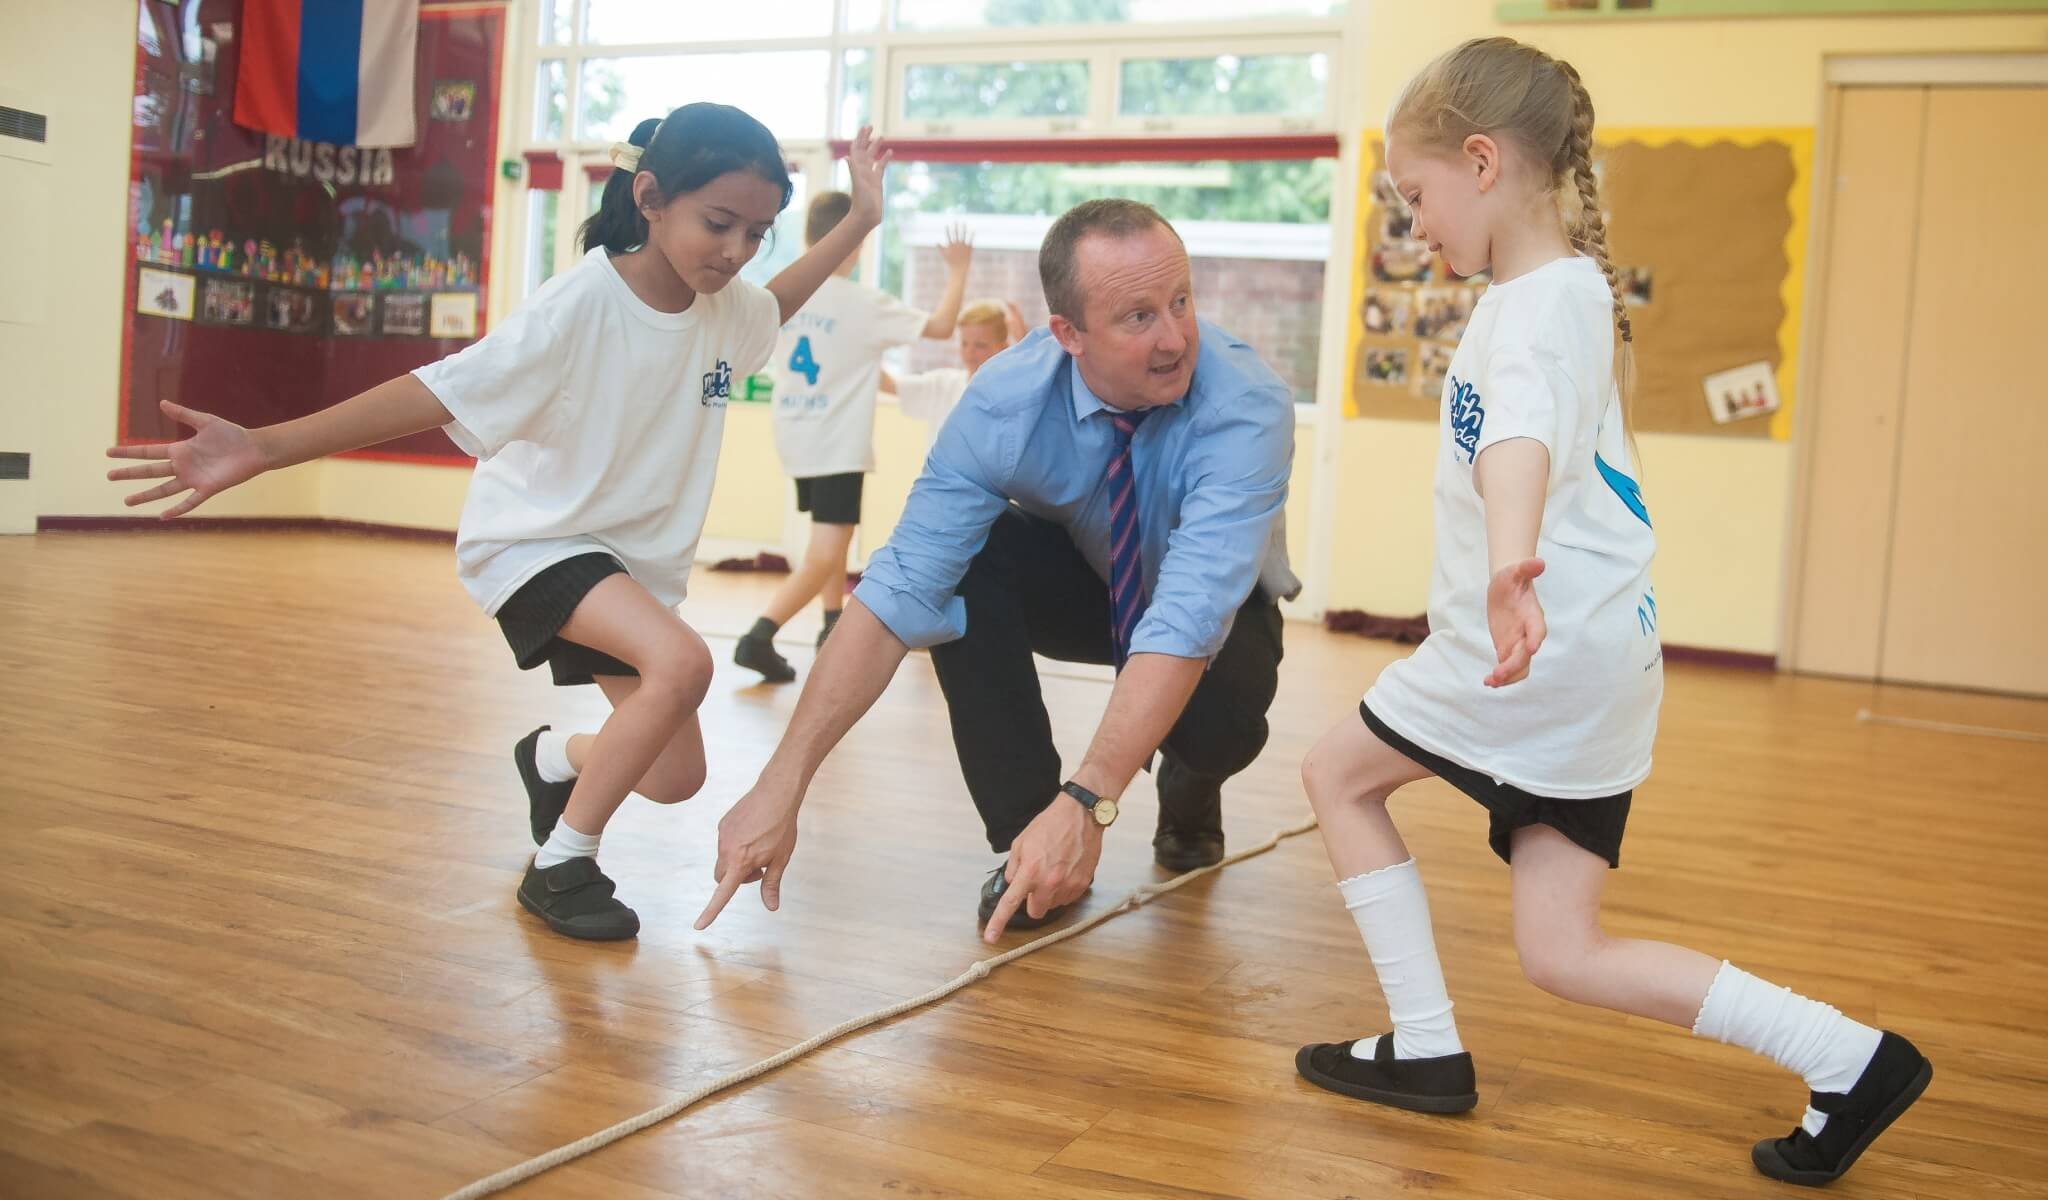 Children being taught a game with a skipping rope with Maths of the Day